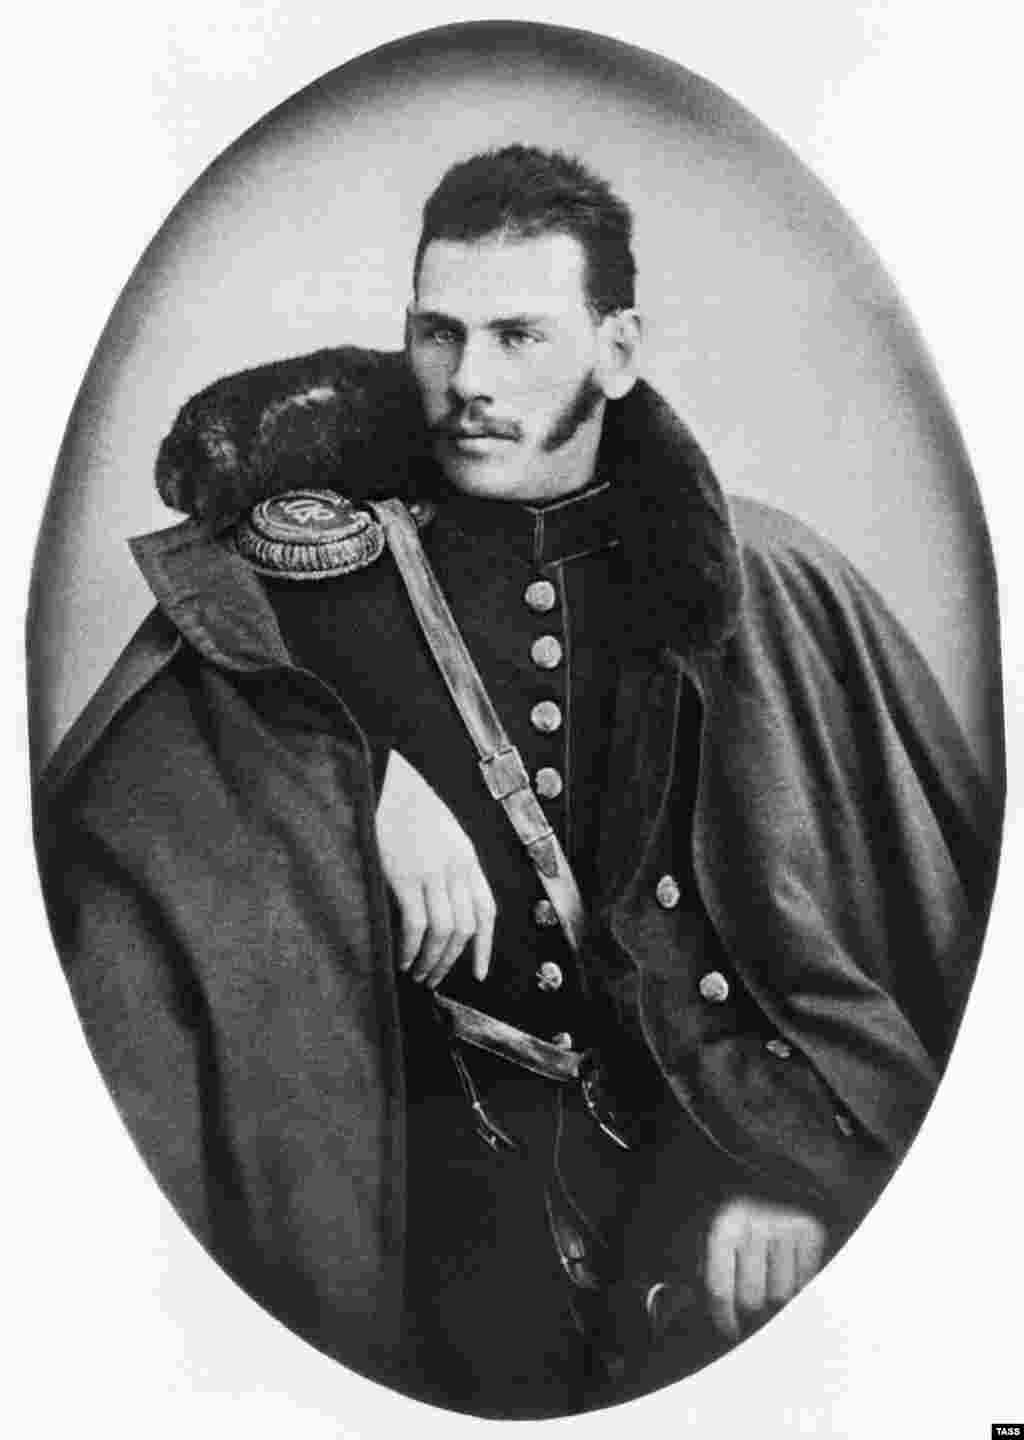 Tolstoy in military uniform in 1854. After several youthful years of gambling, drinking, and chasing girls, Tolstoy joined the tsar's army. He served with distinction in the Caucasus and the Crimean War, which was ongoing when this photo was taken.